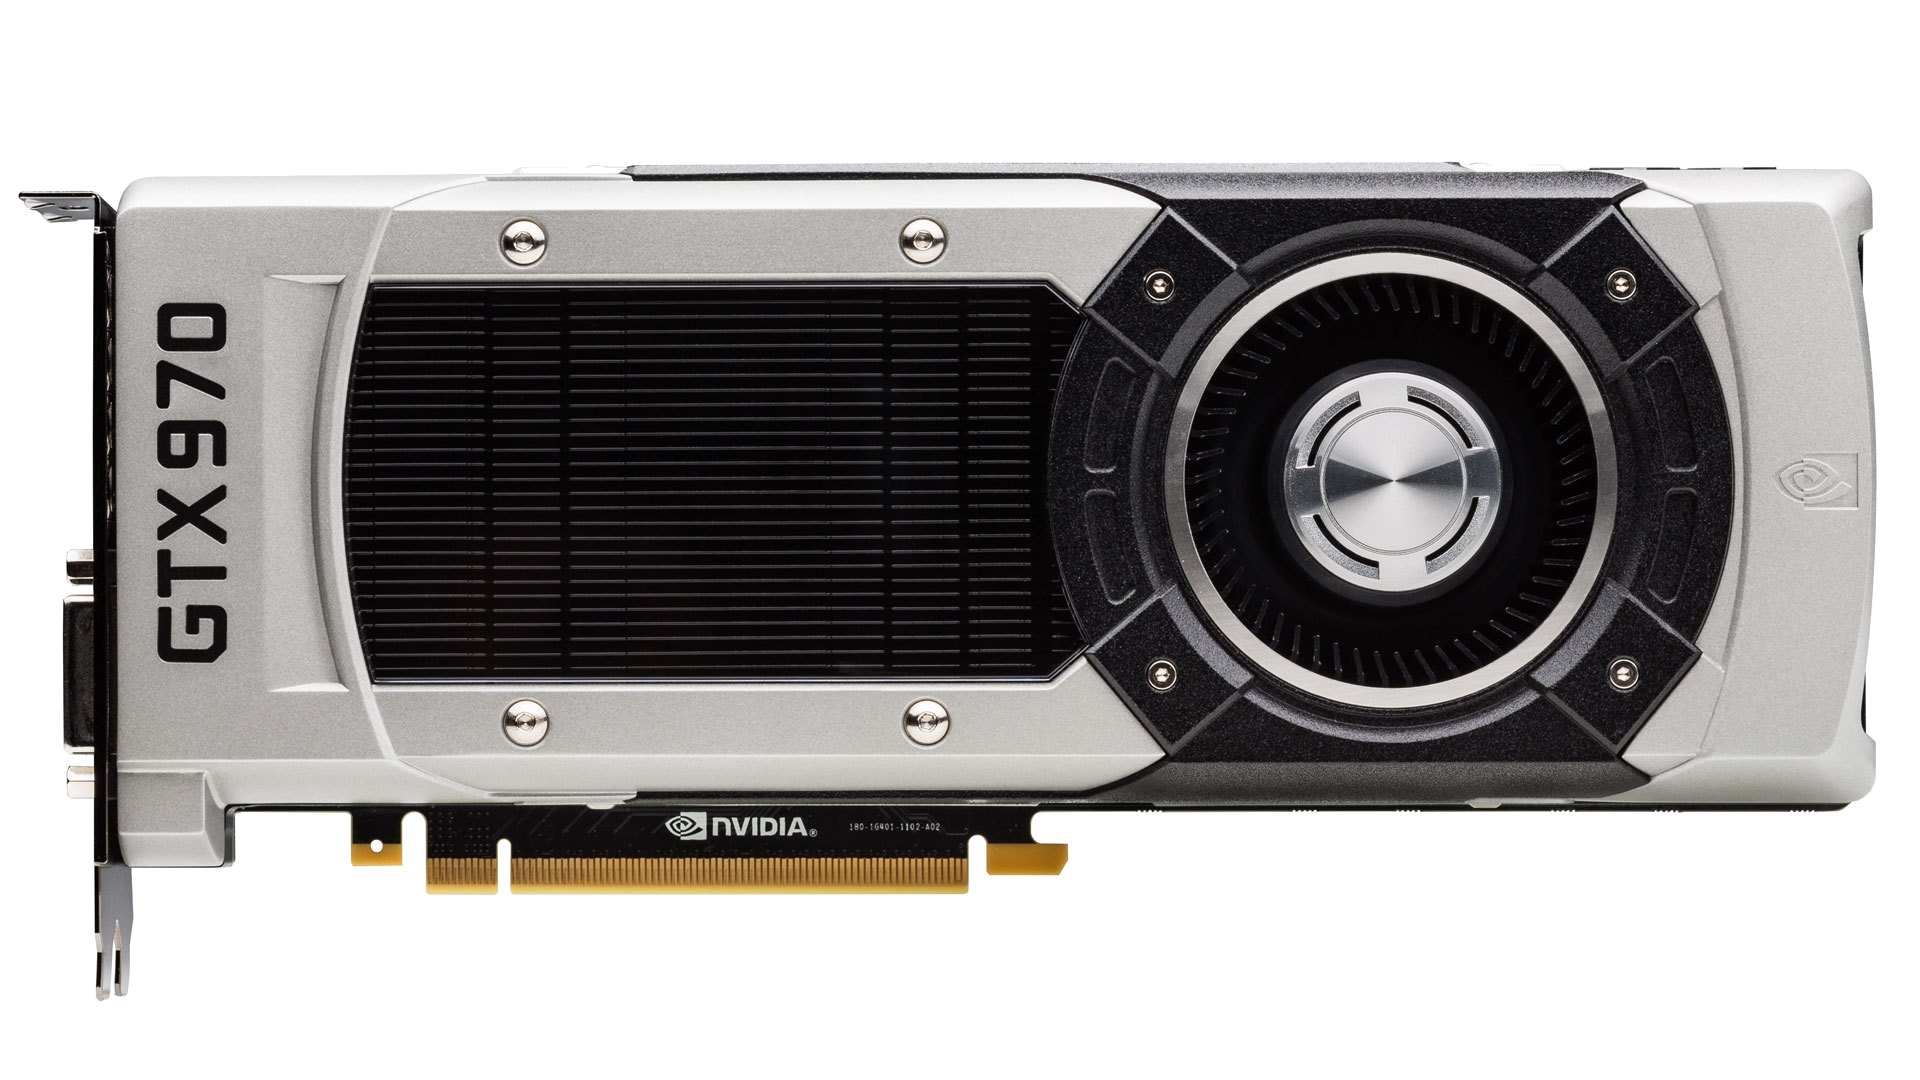 The GeForce GTX 970 sent shockwaves through the market with its price to performance ratio.